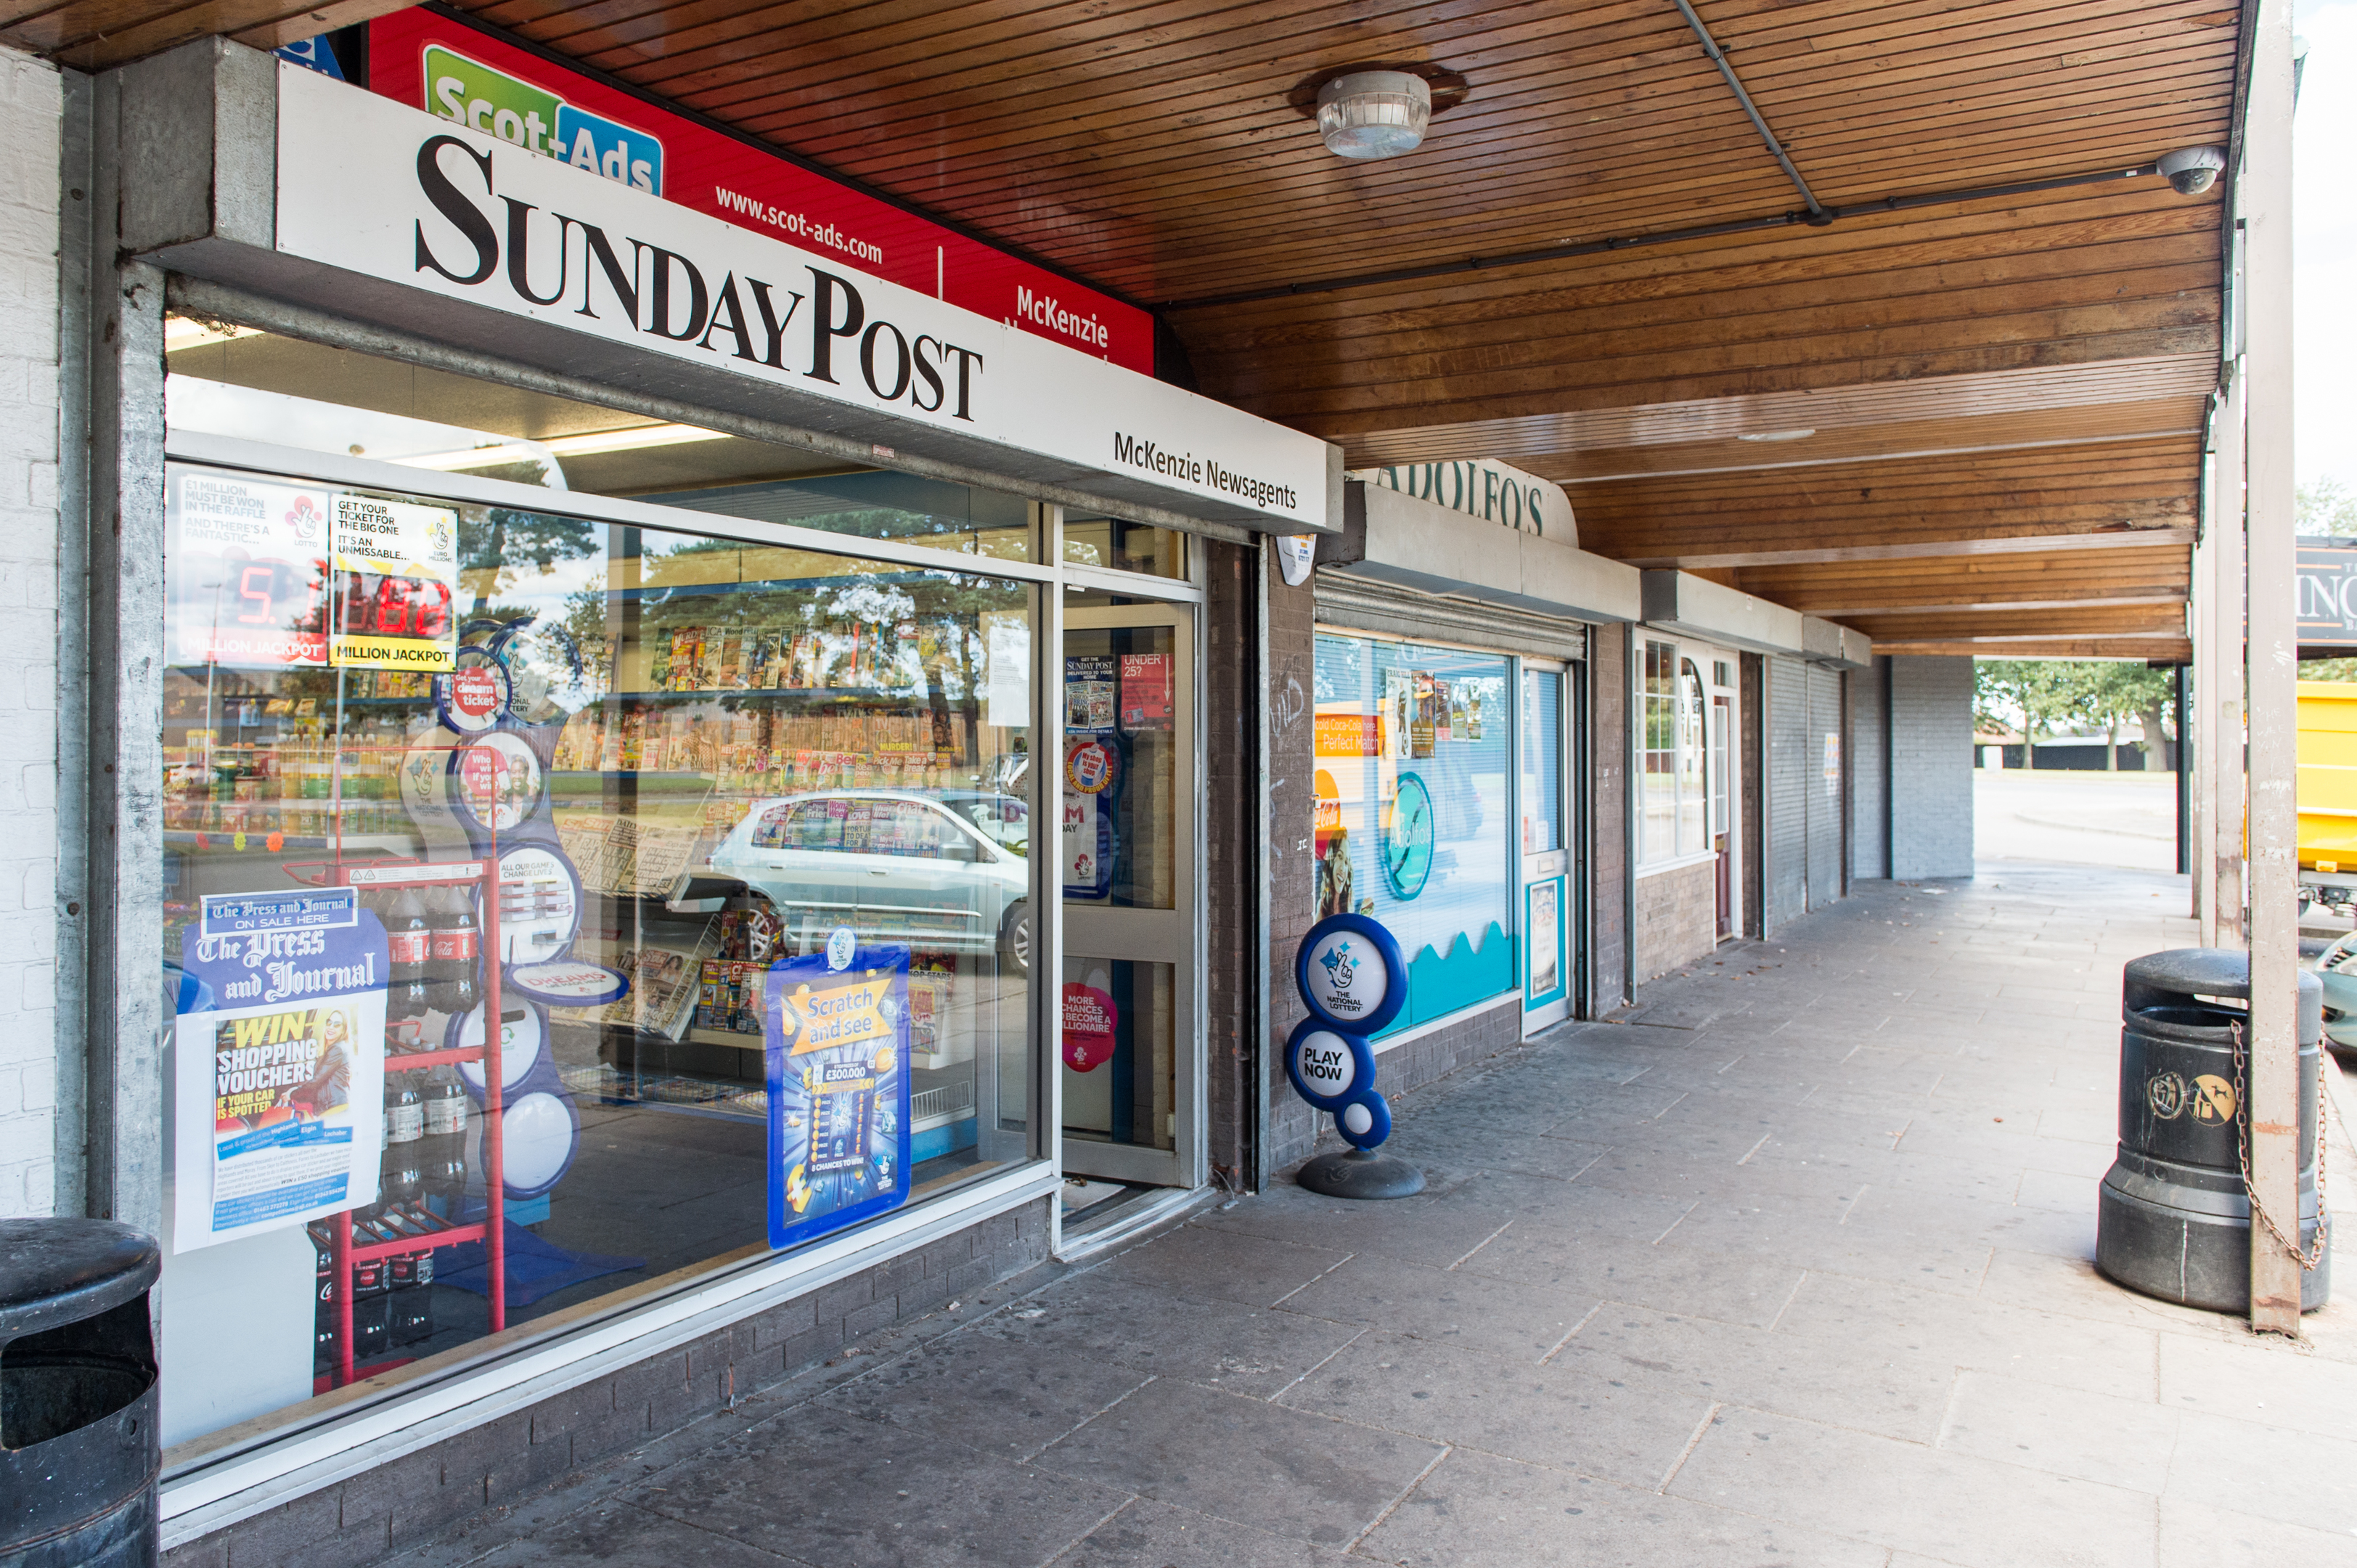 16/08/208 - Pictures show McKenzie Newsagents on Glen Moray Drive where an attempted Robbery took place erlier this morning.